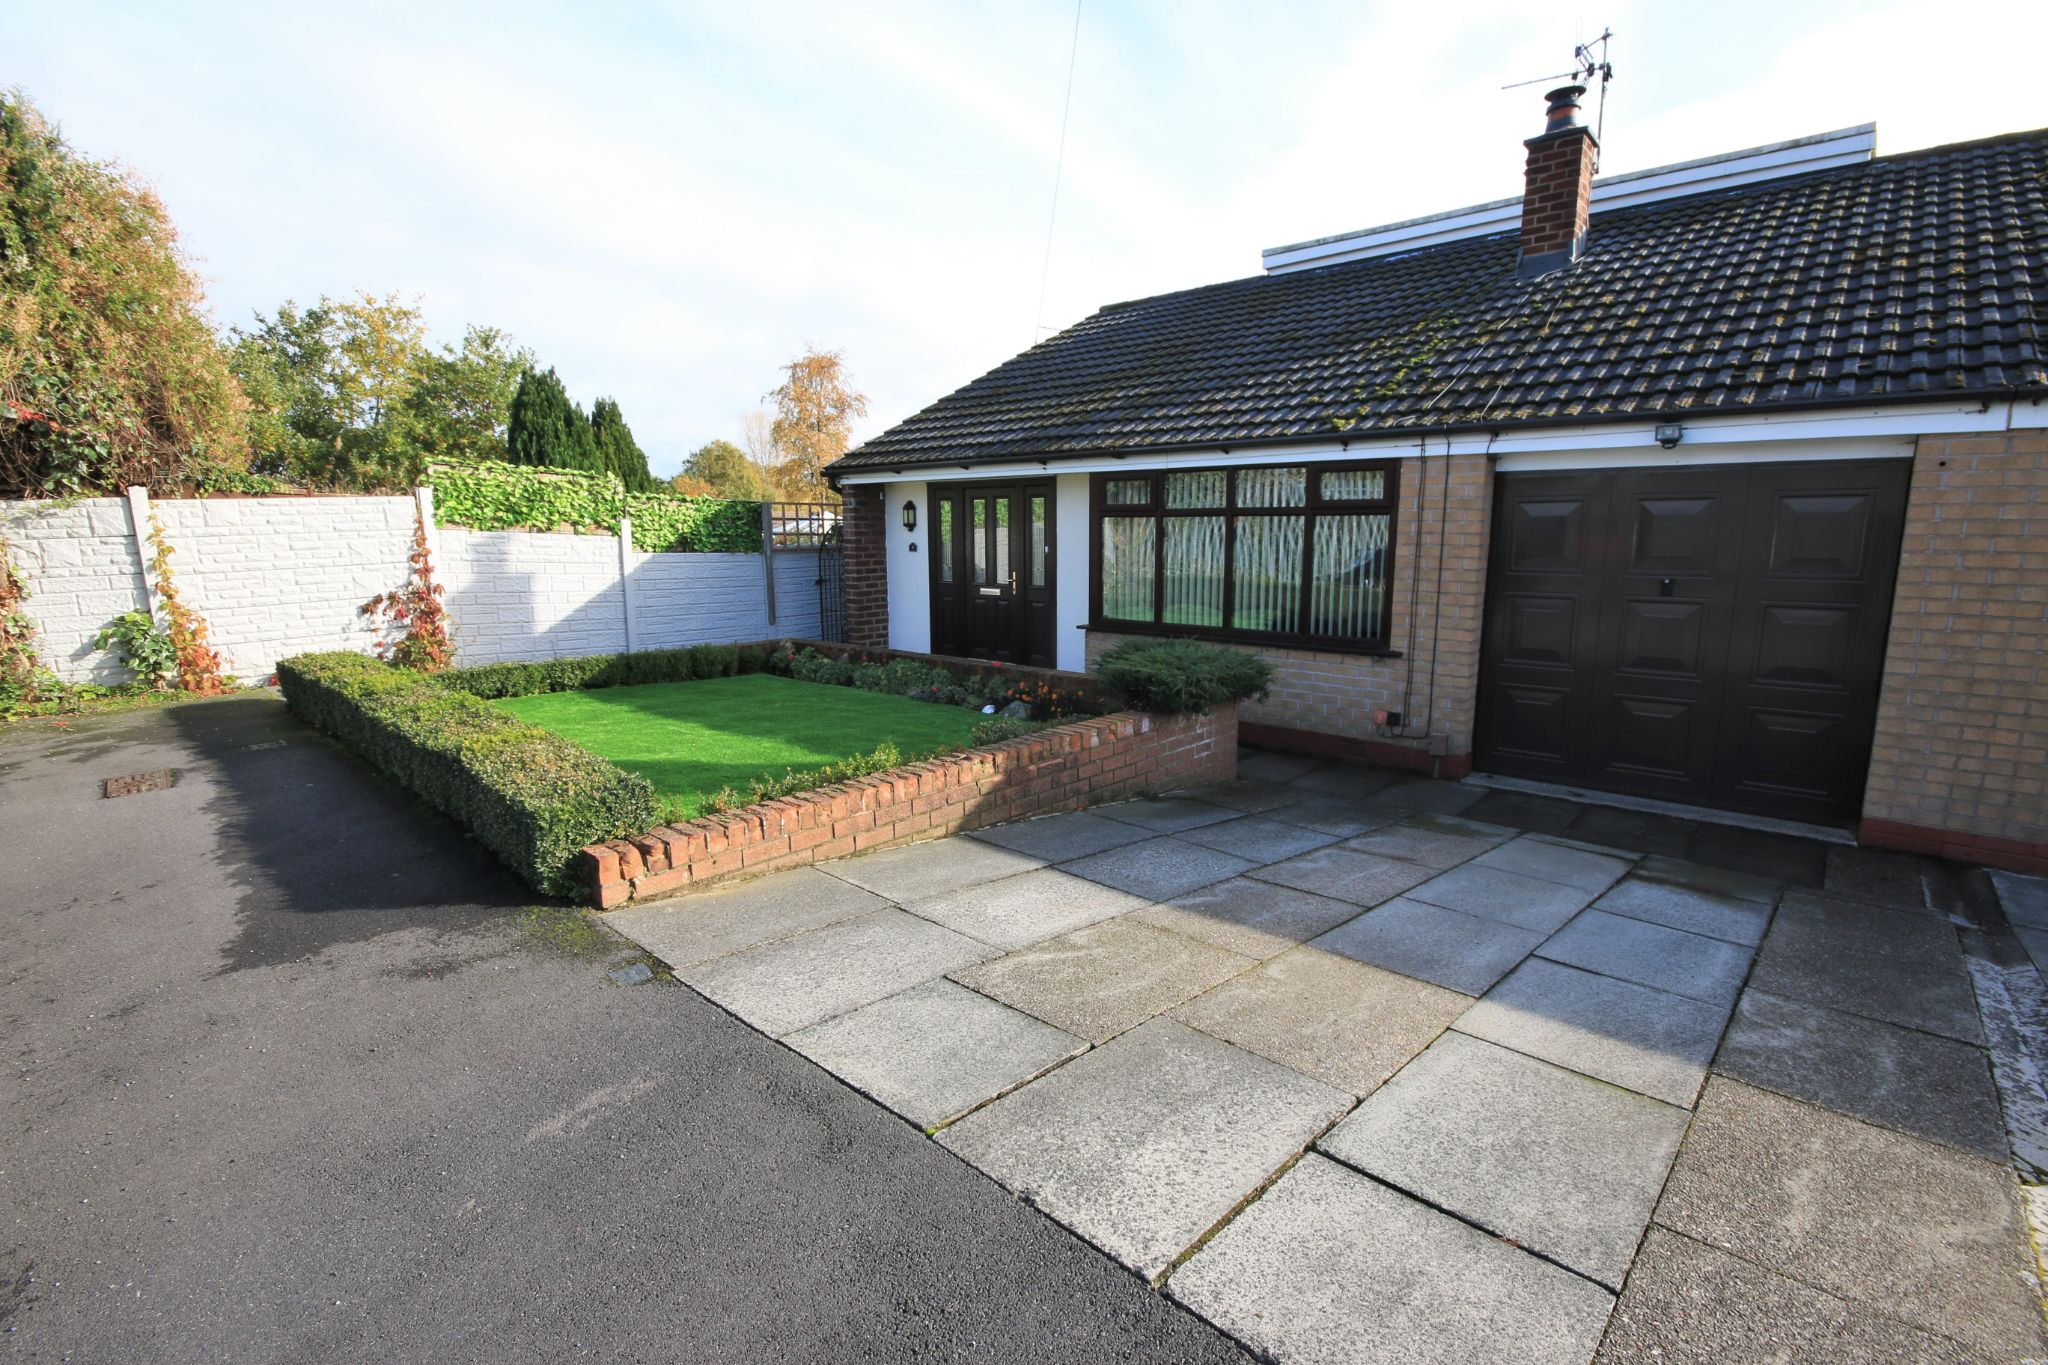 4 Bedroom Semi-detached Bungalow For Sale - Photograph 1